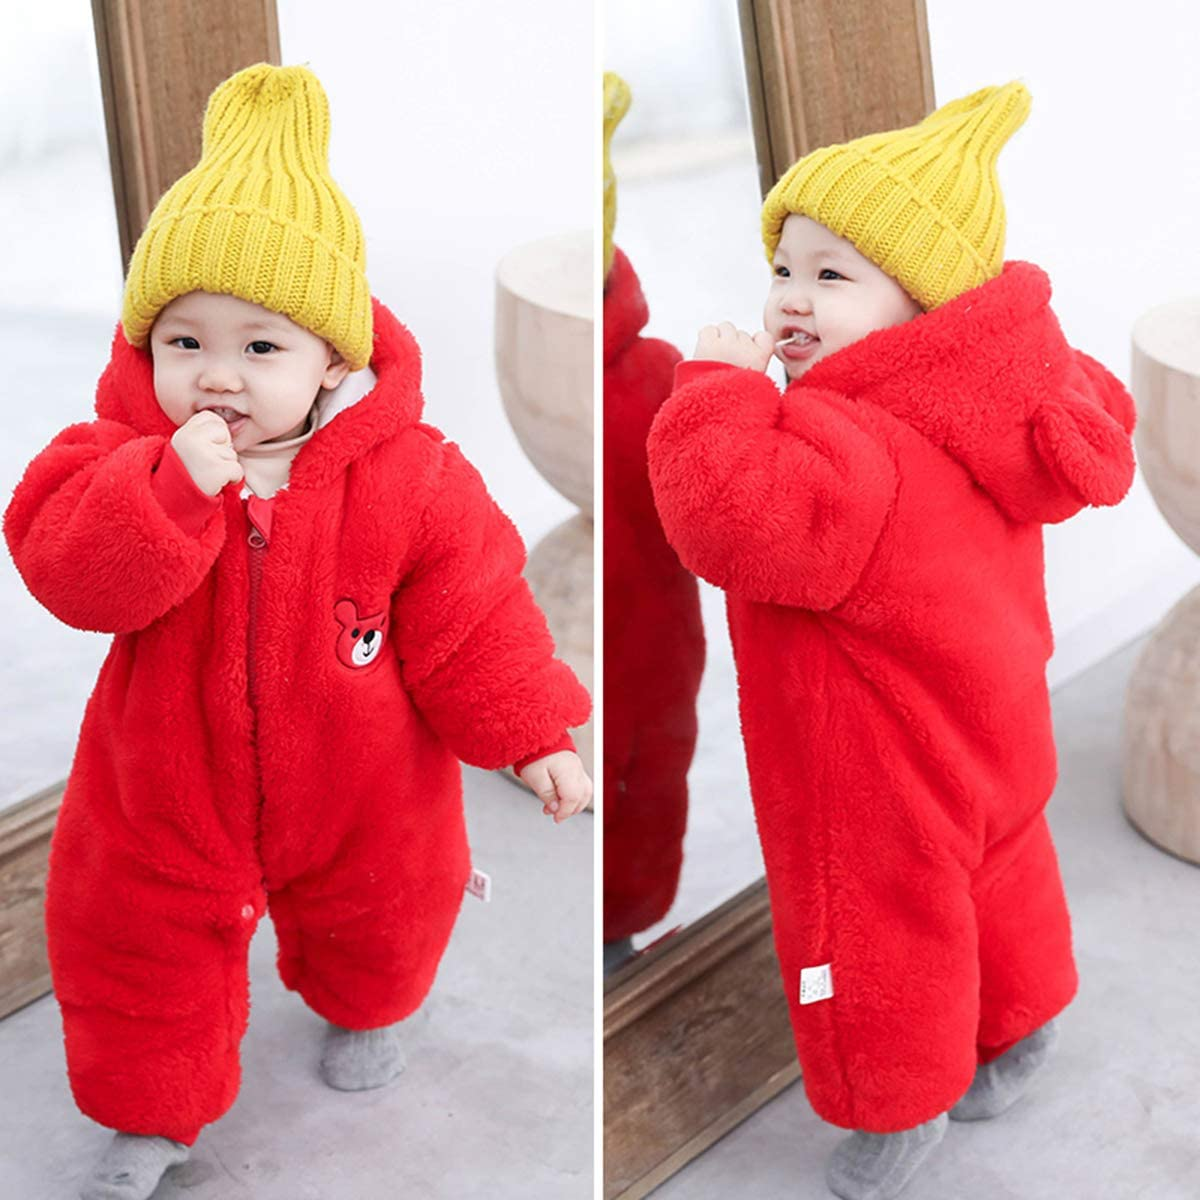 Aisheny Newborn Baby Boy Girl Hooded Snowsuit Fleece Winter Thick Warm Jumpsuit with Ears